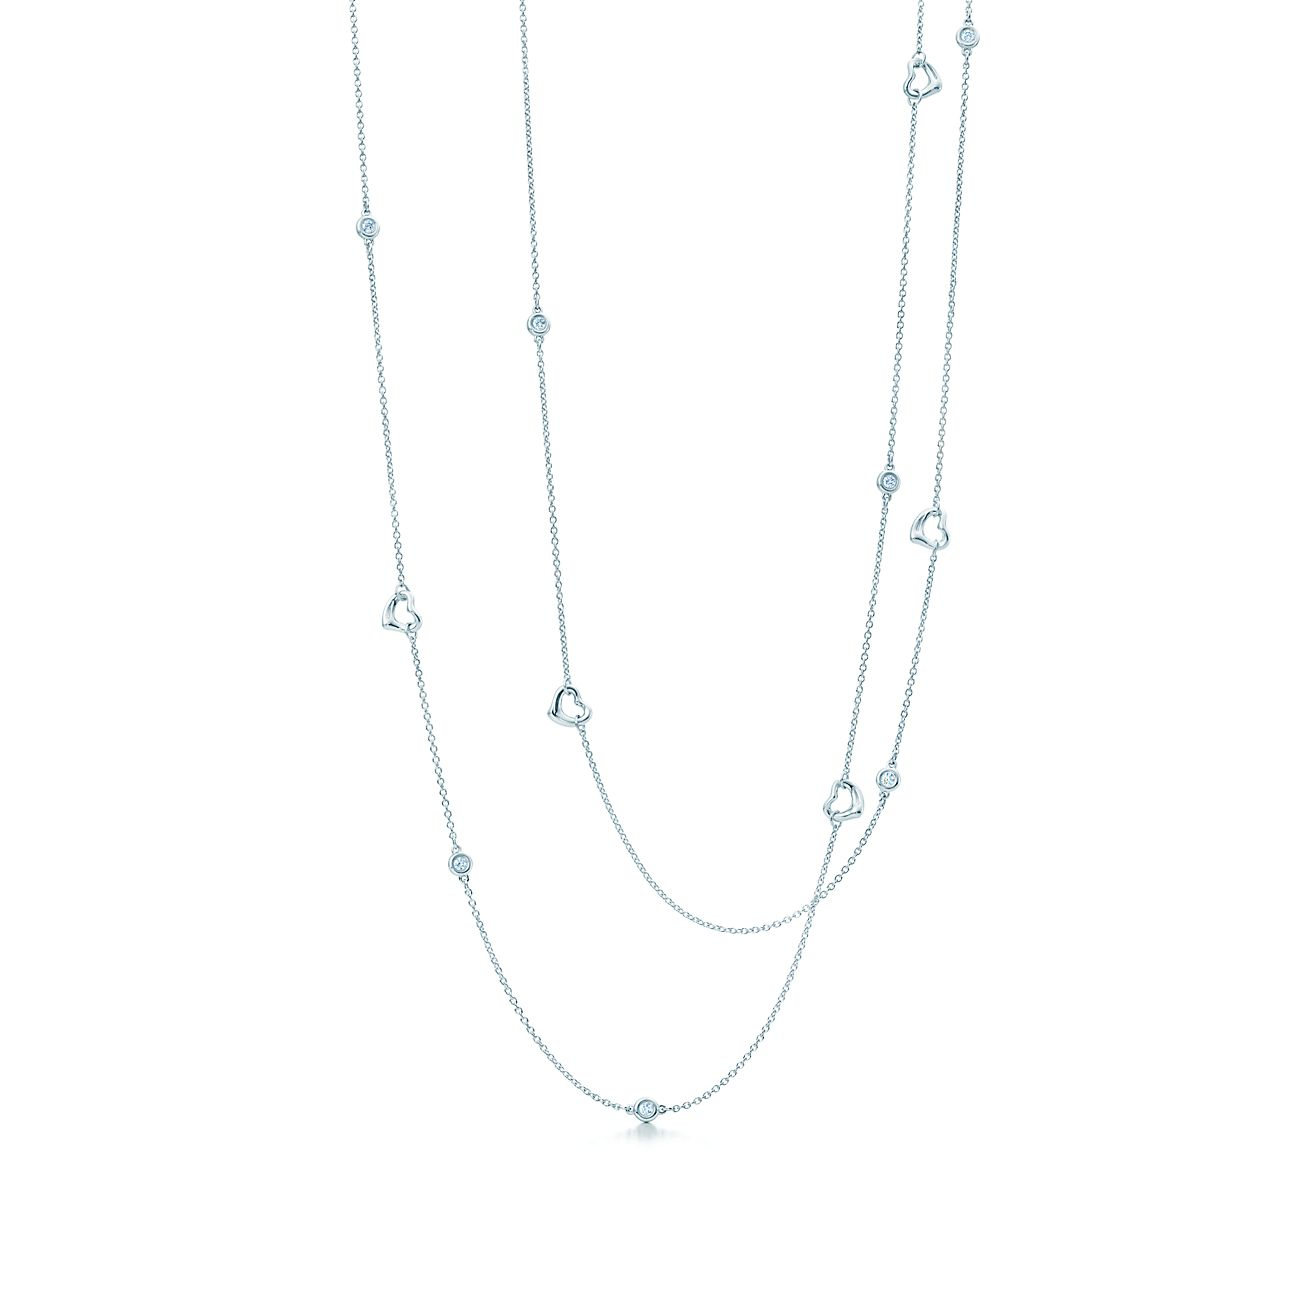 Elsa Peretti Pearls by the Yard sprinkle necklace in sterling silver - Size Tiffany & Co.